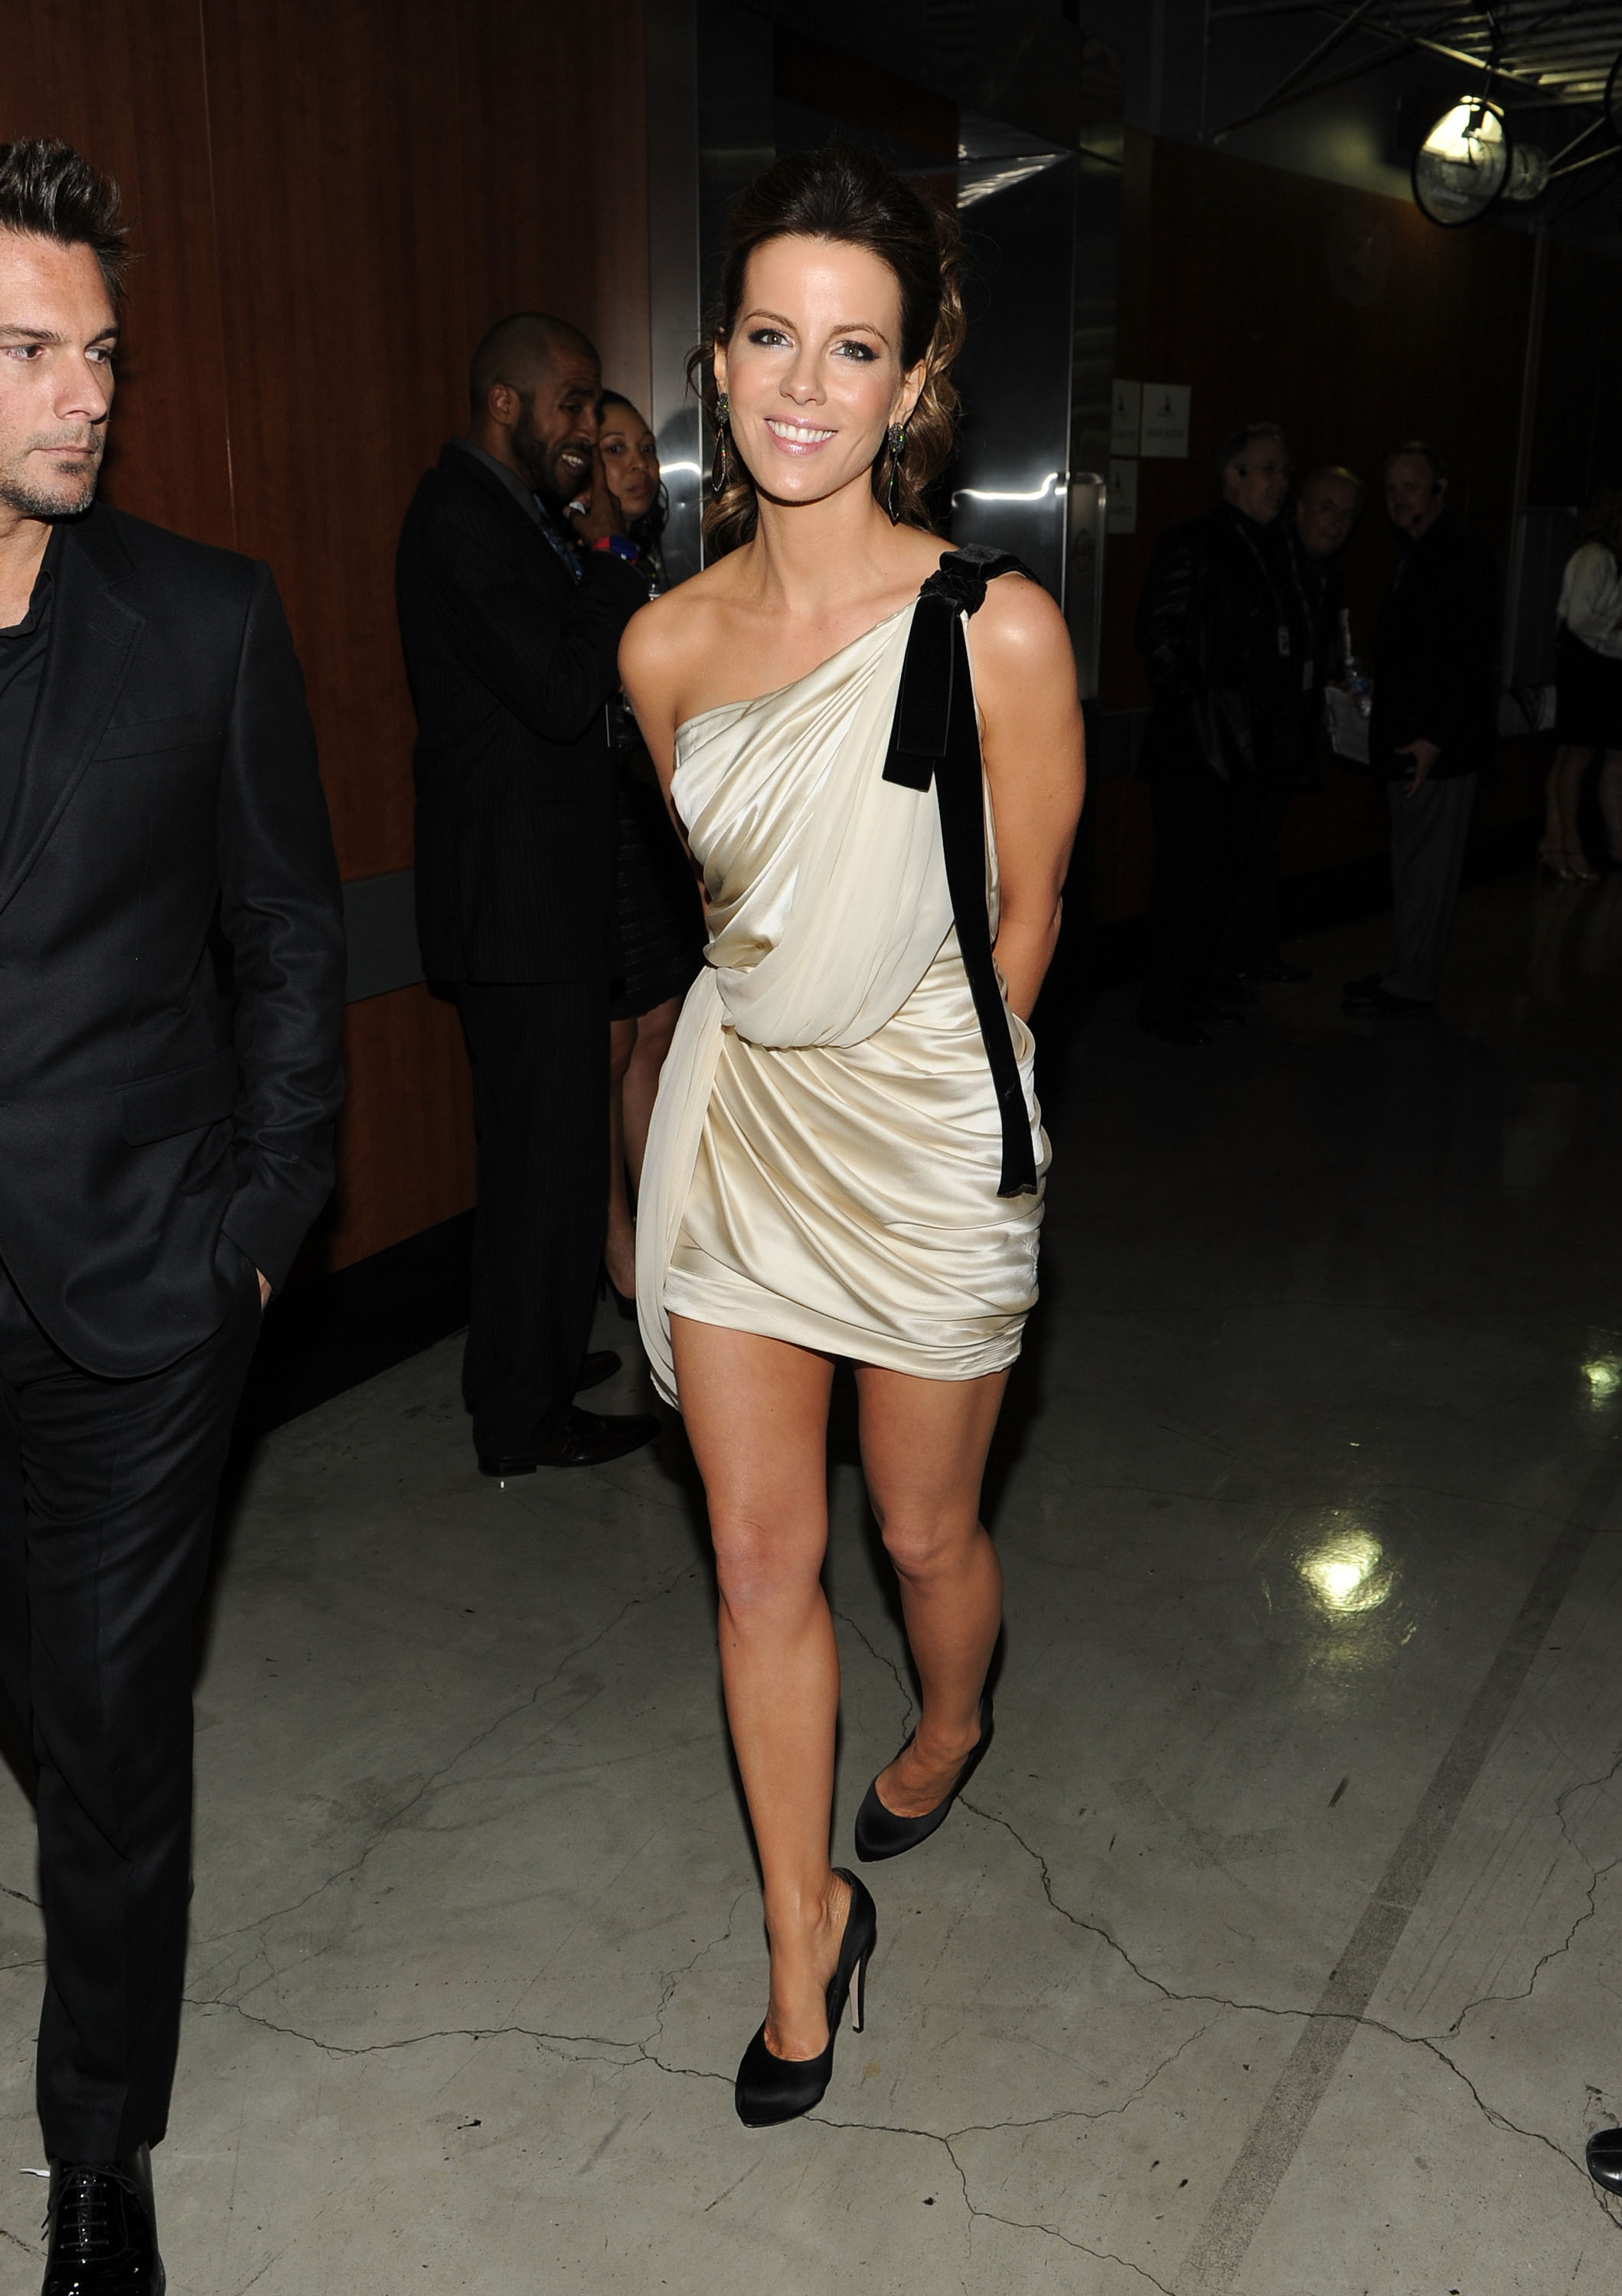 Kate Beckinsale wore a black and white min